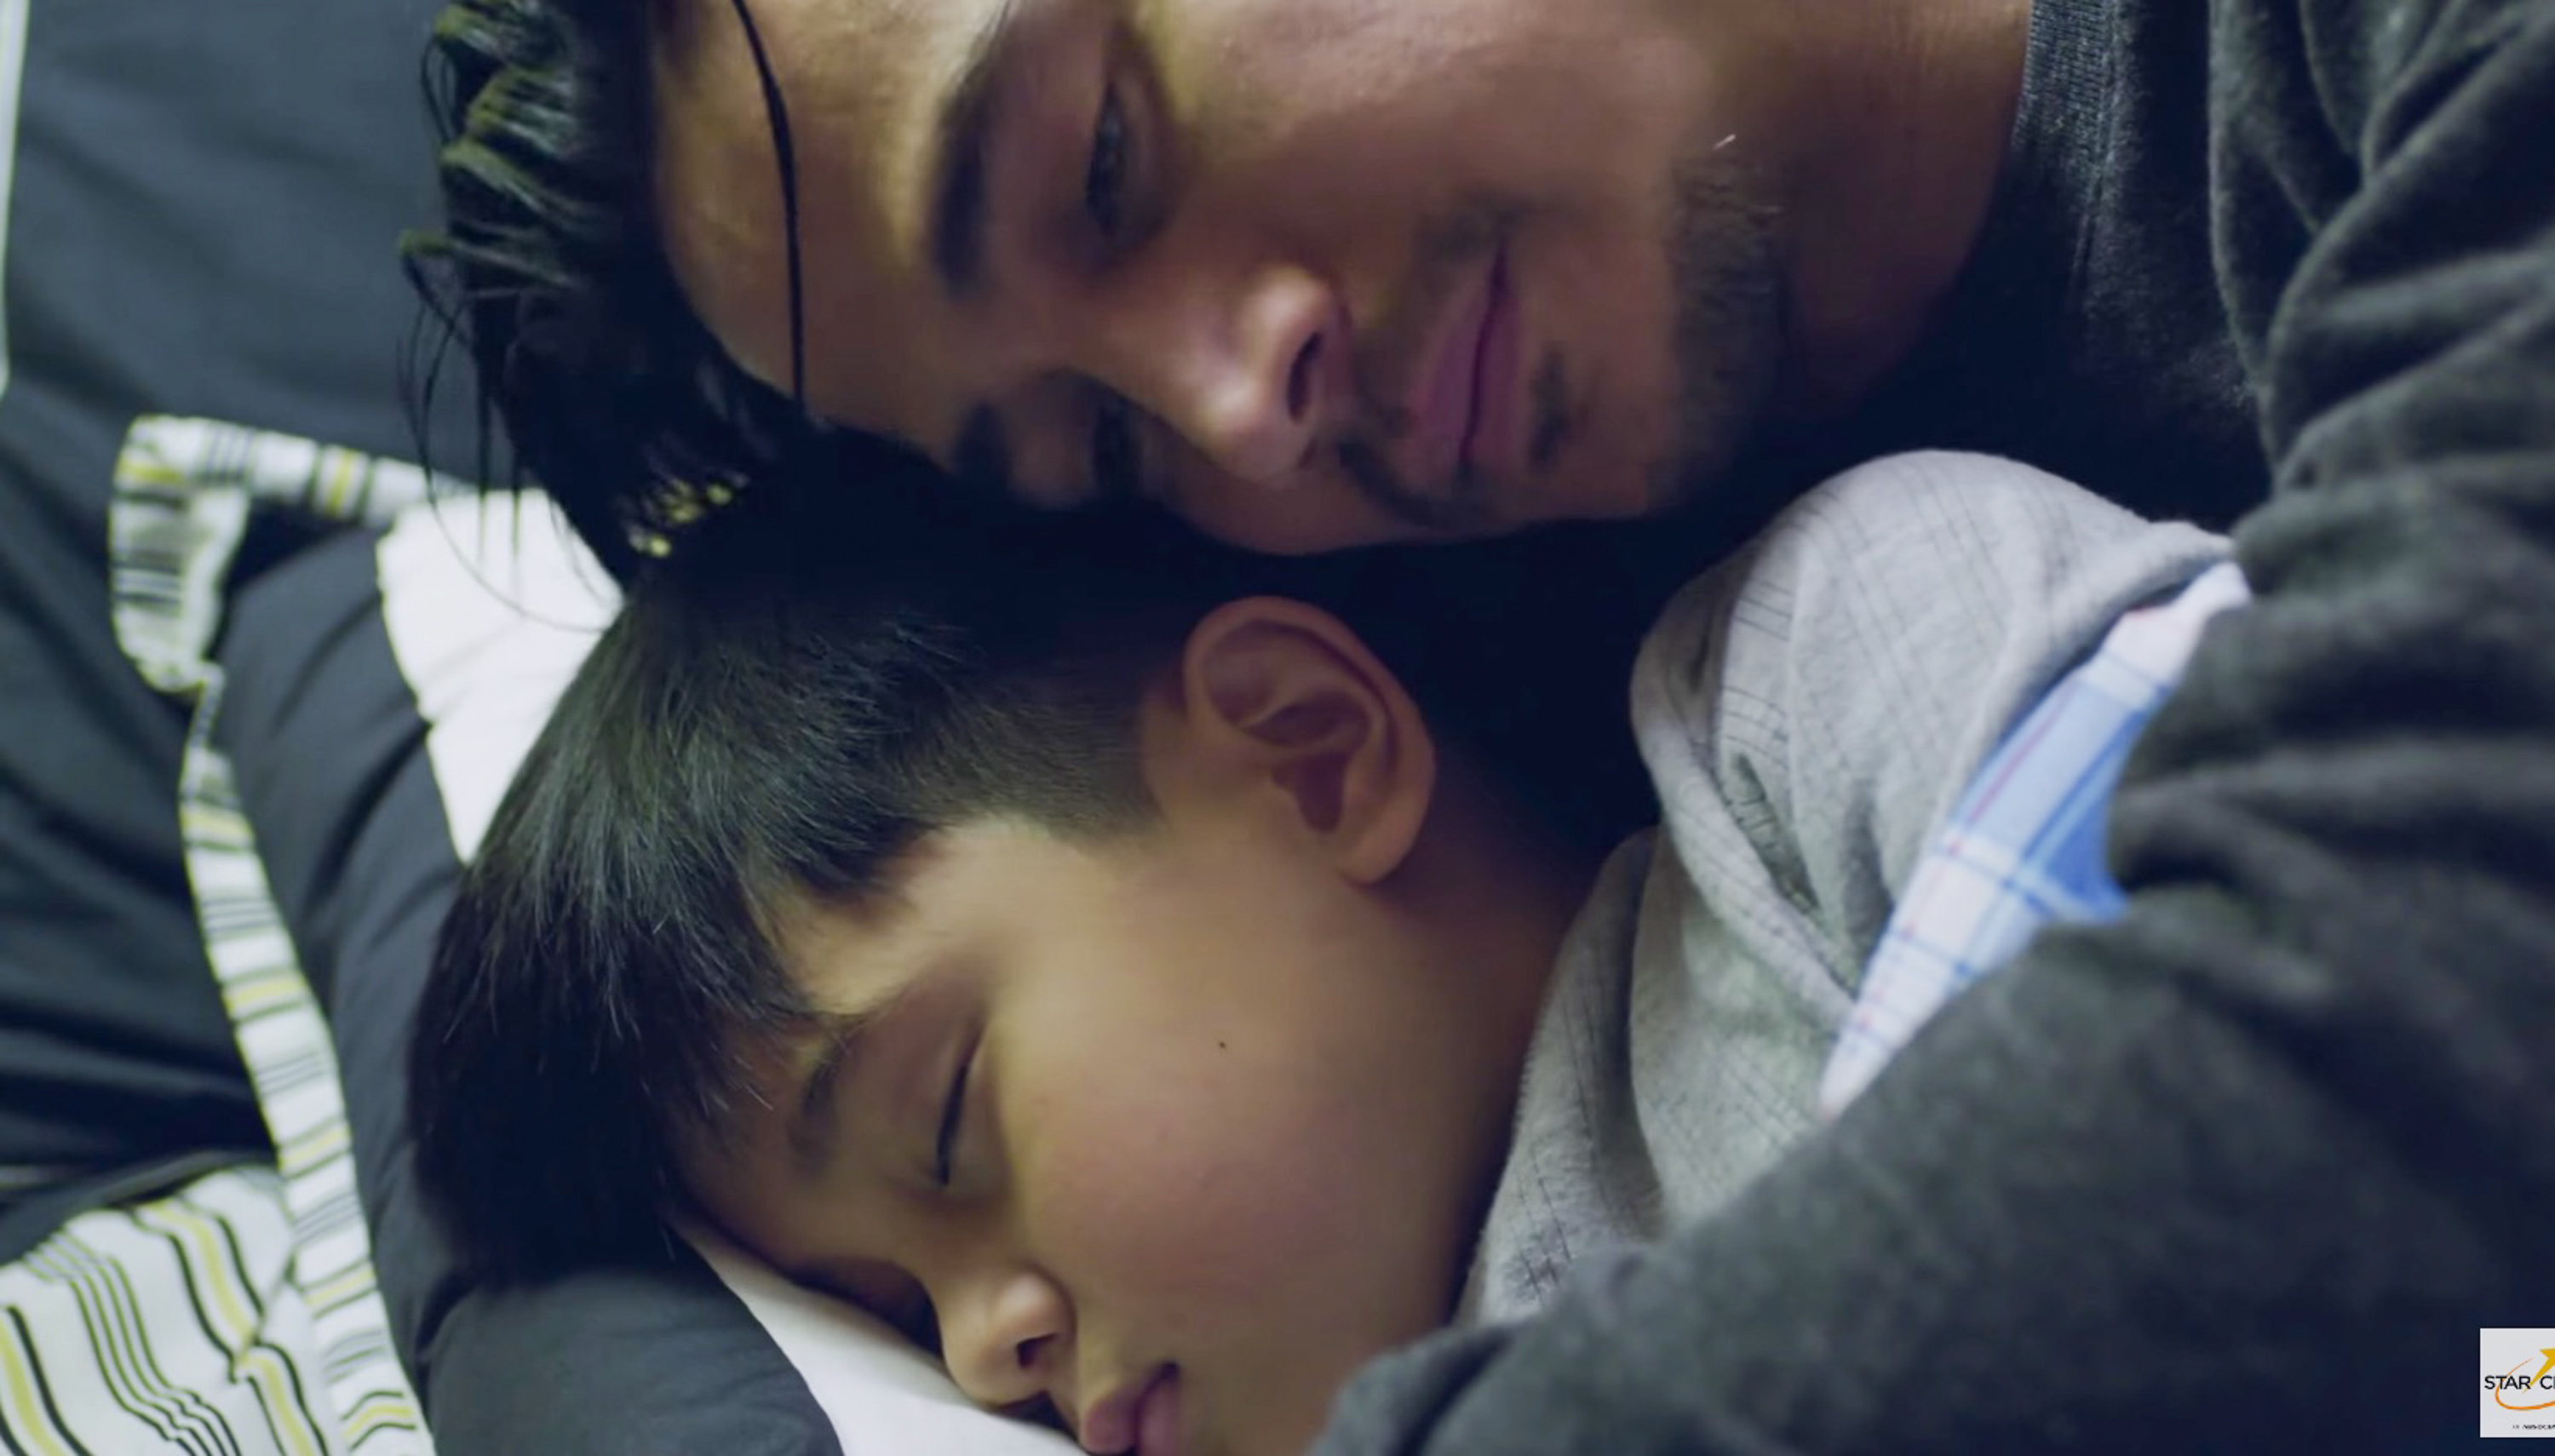 FATHER AND SON. Piolo Pascual and Raikko Mateo in a scene in 'Northern Lights.' Screengrab from YouTube/ABS-CBN Star Cinema